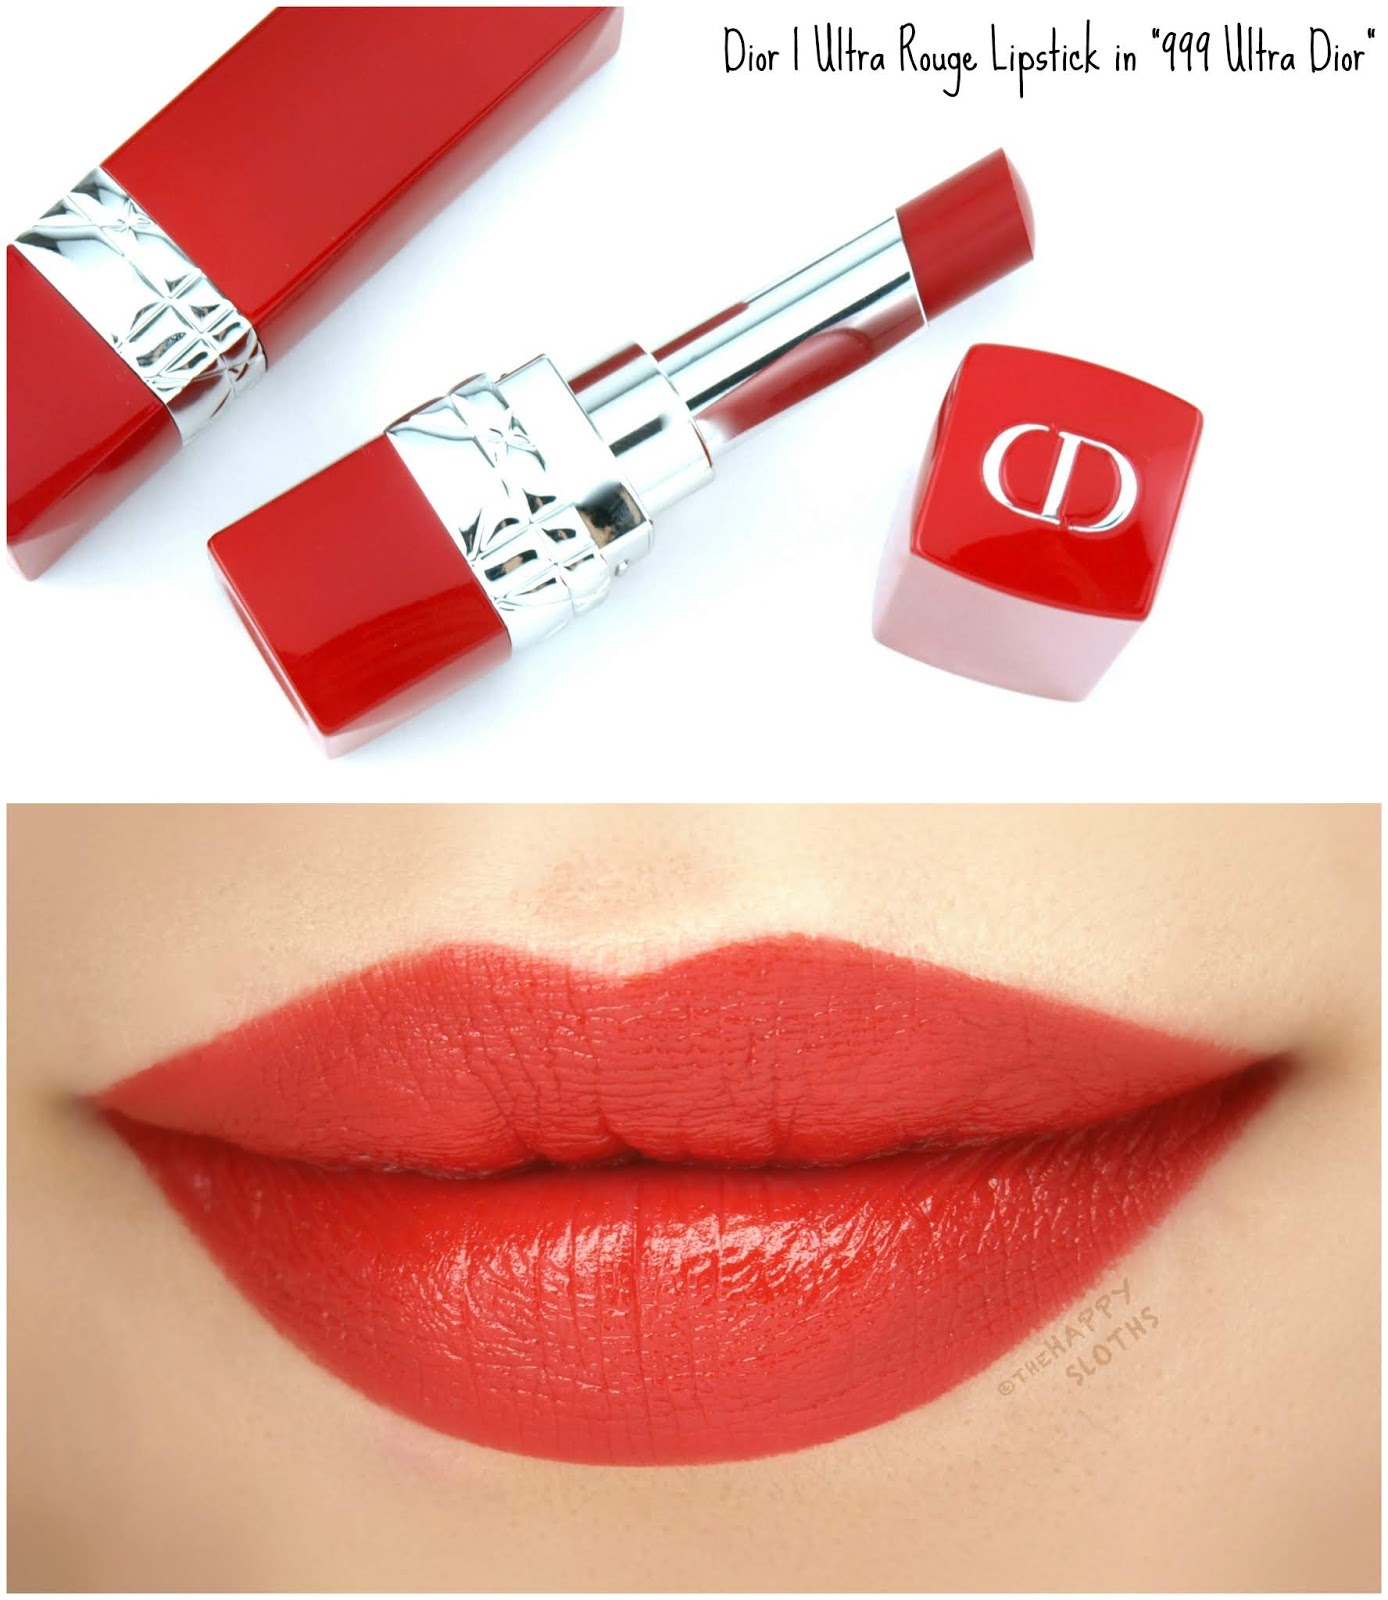 "Dior | Ultra Rouge Ultra Pigmented Hydra Lipstick in ""999 Ultra Dior"": Review and Swatches"